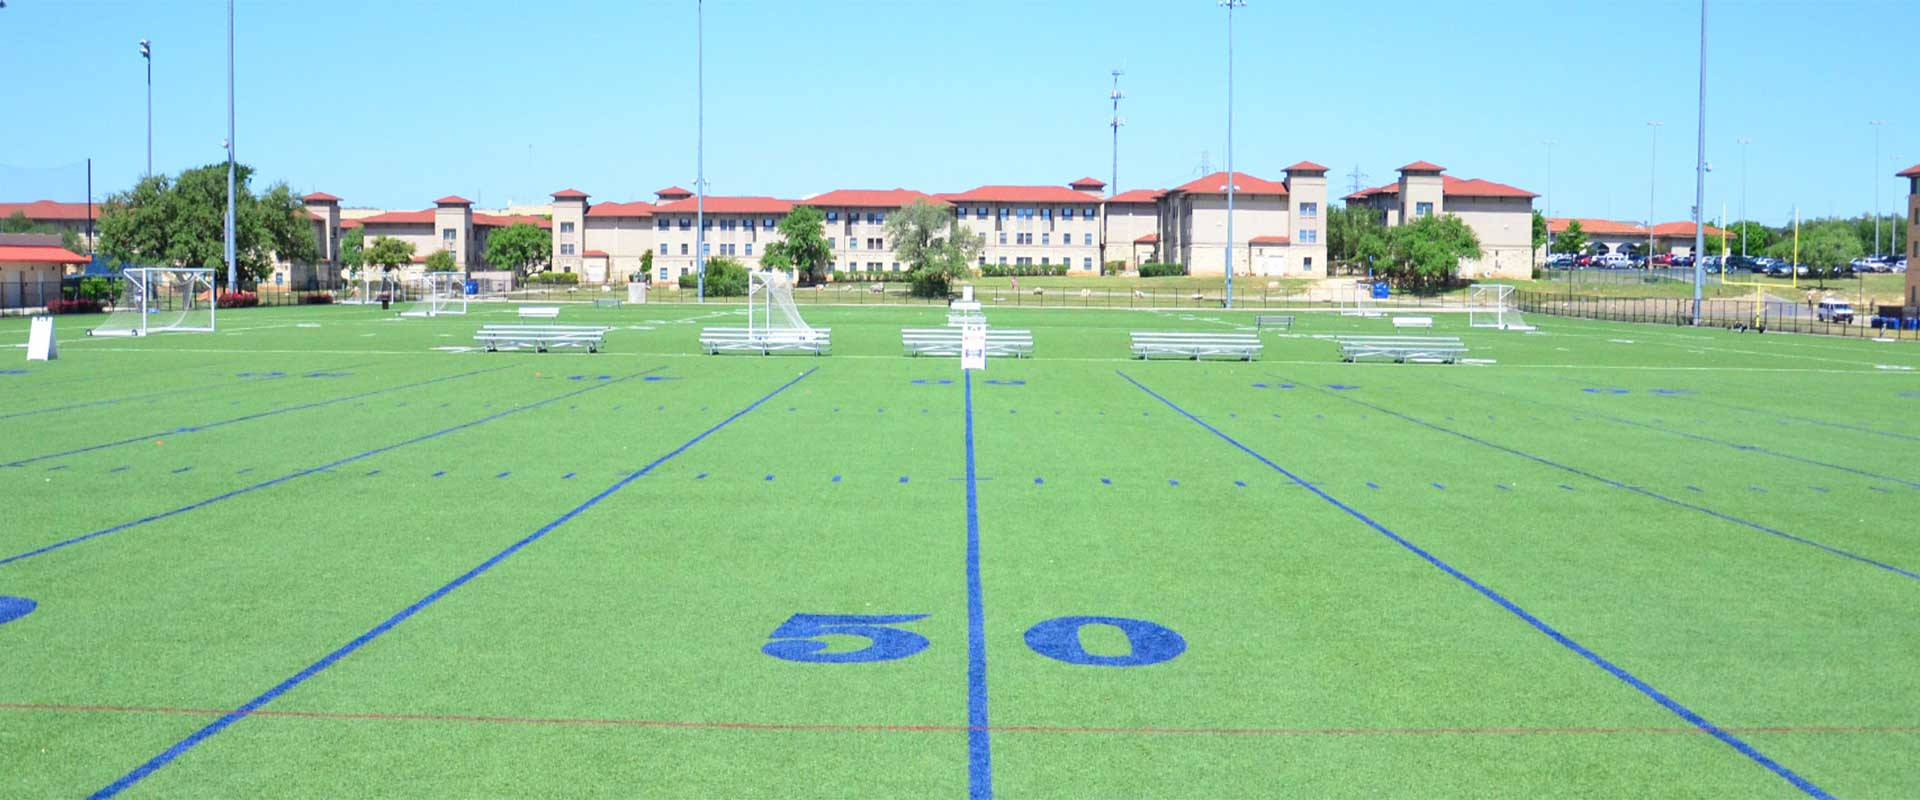 Are you looking to invest in a low maintenance athletic surface?